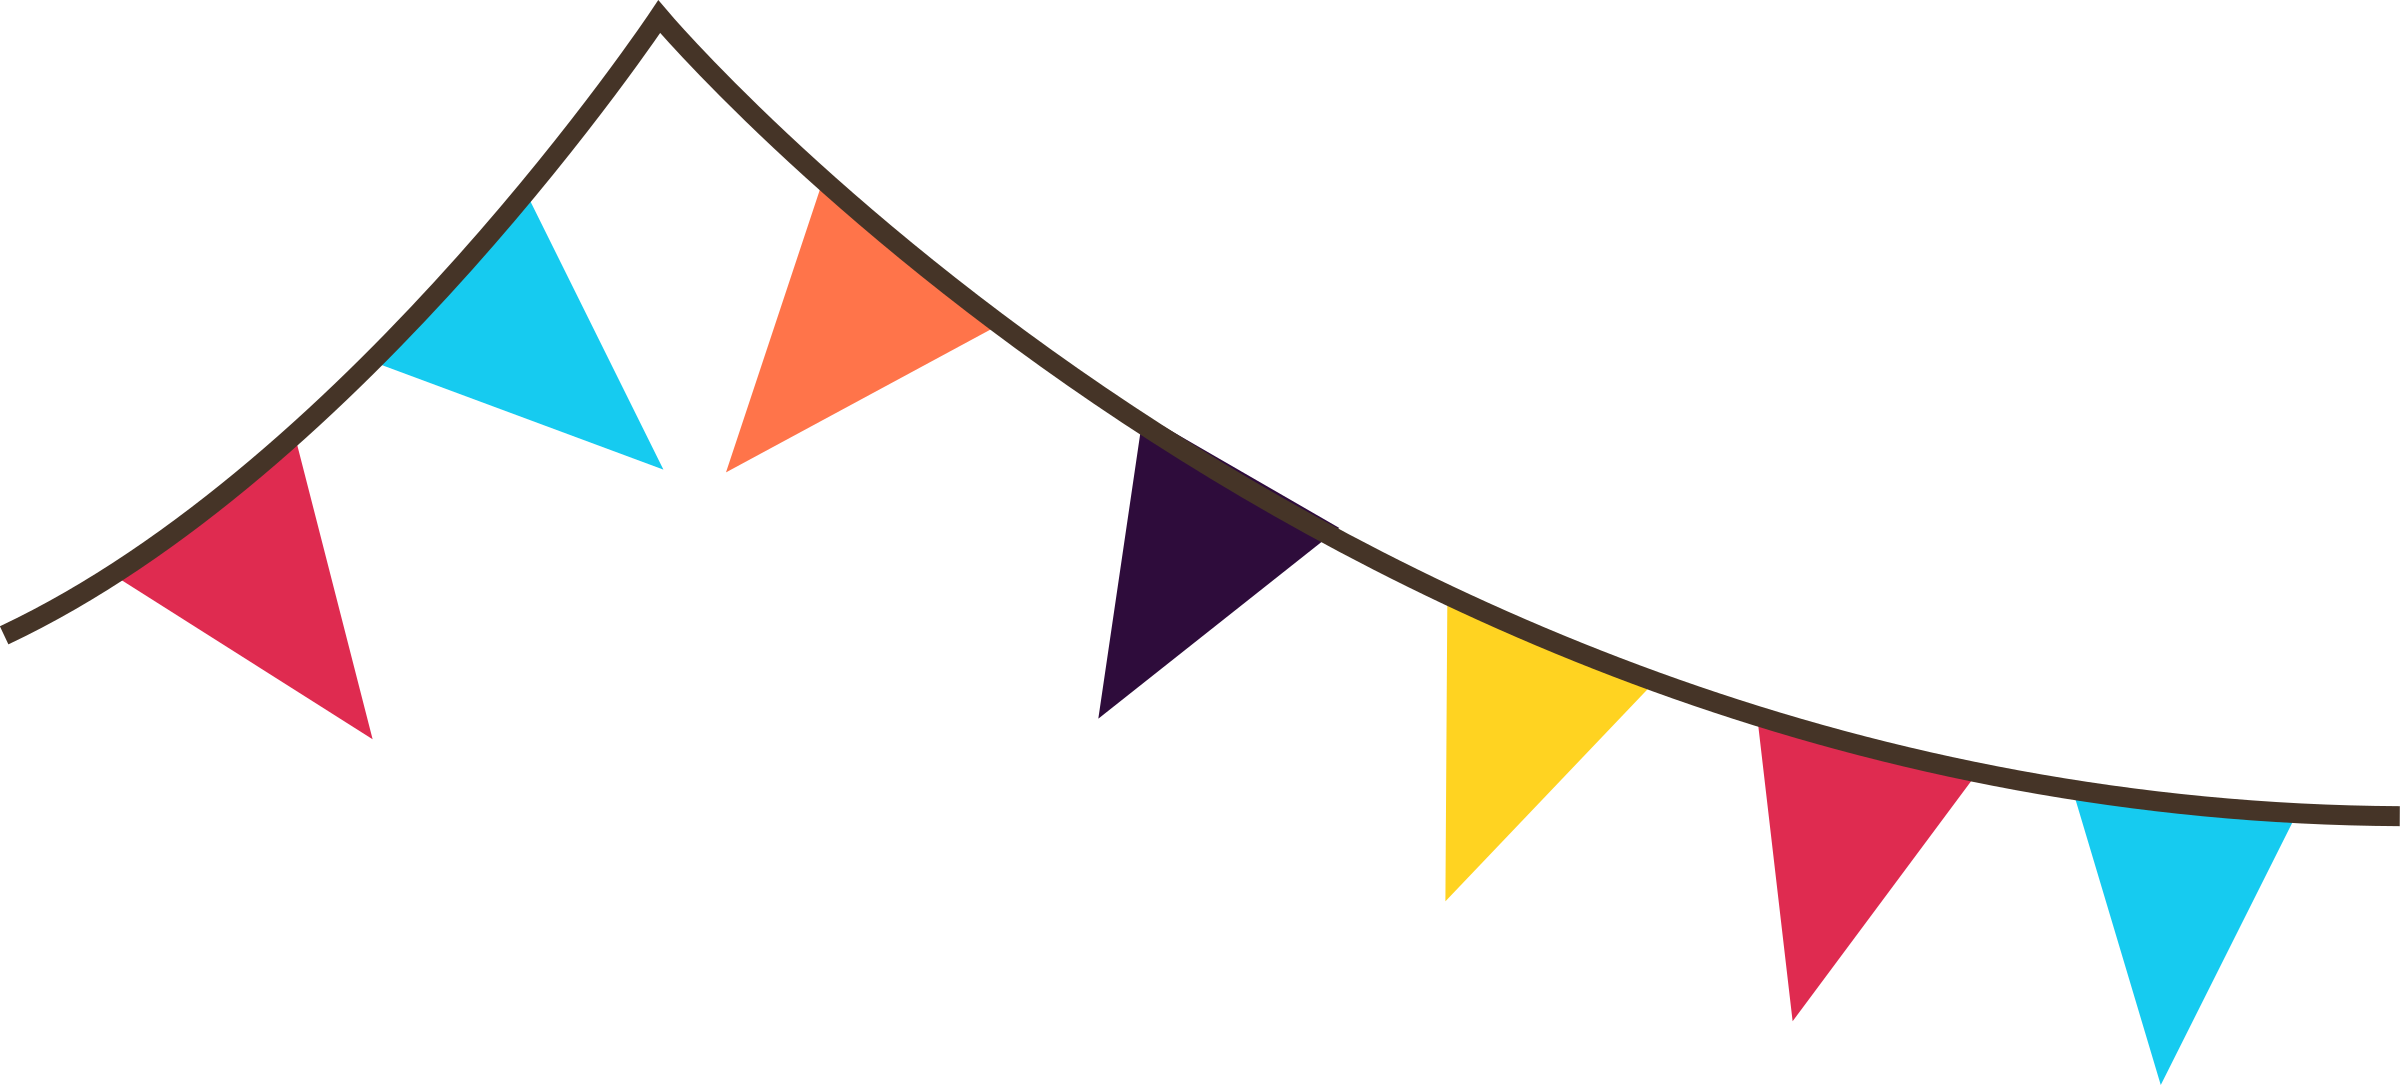 Triangle clipart celebration banner Free transparent Flags flag Clip